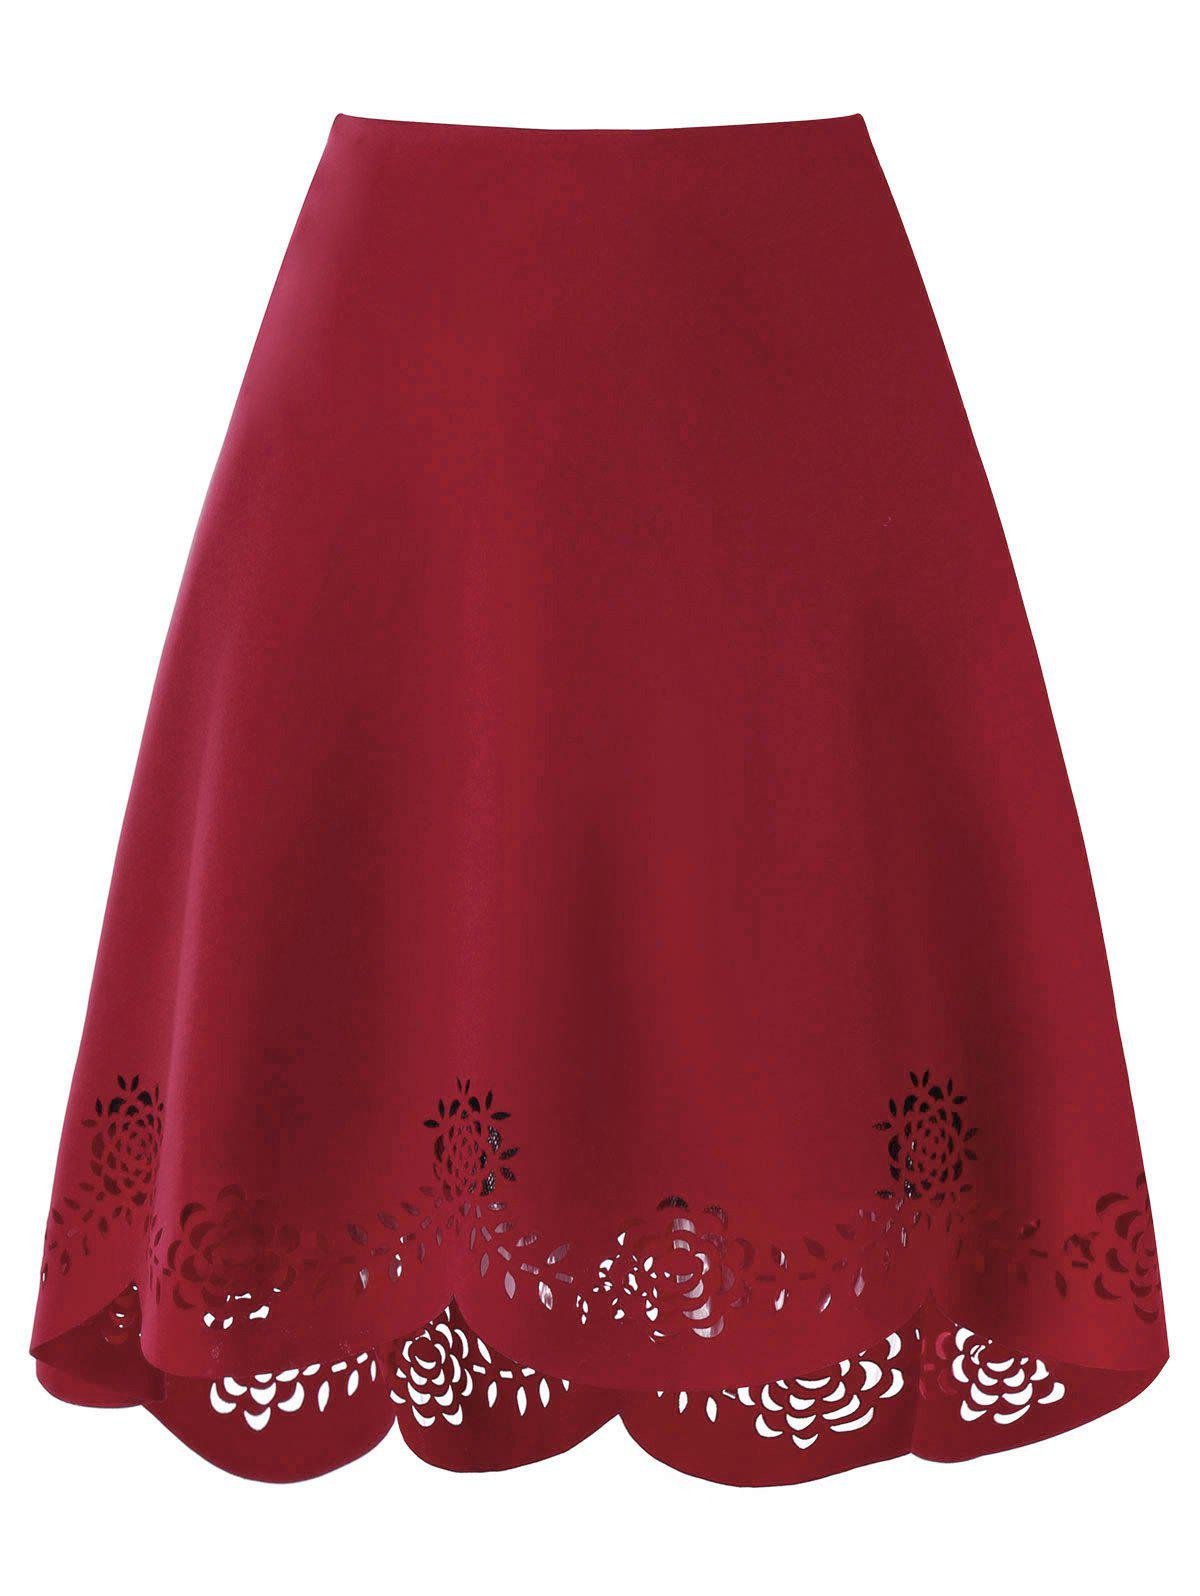 Openwork Scalloped High Low Hem Skirt - WINE RED M